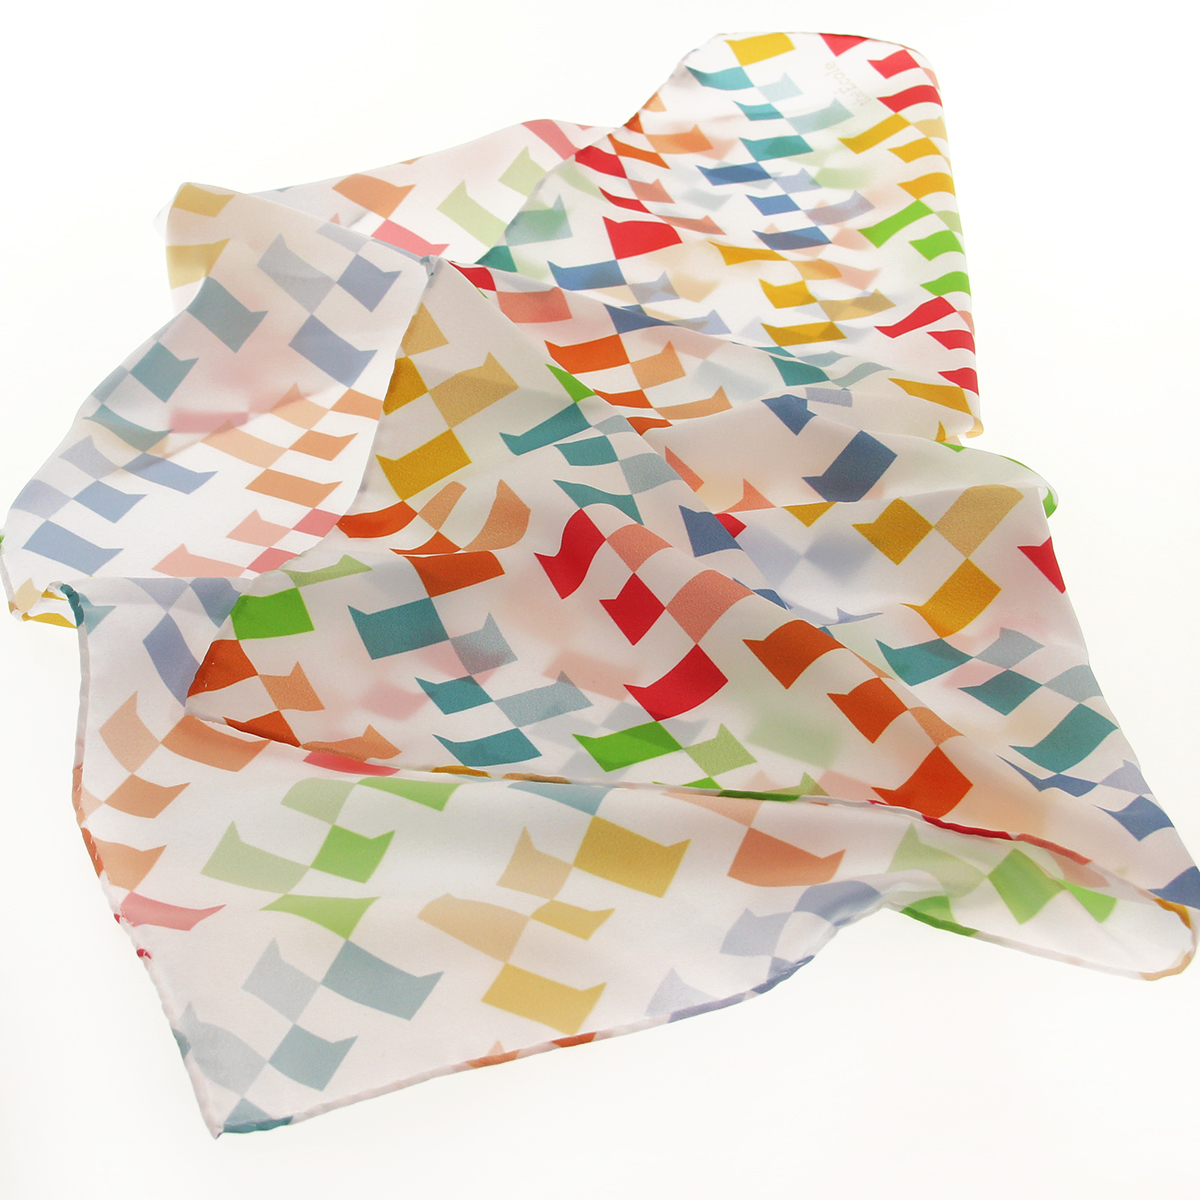 polyester scarves printed in full color